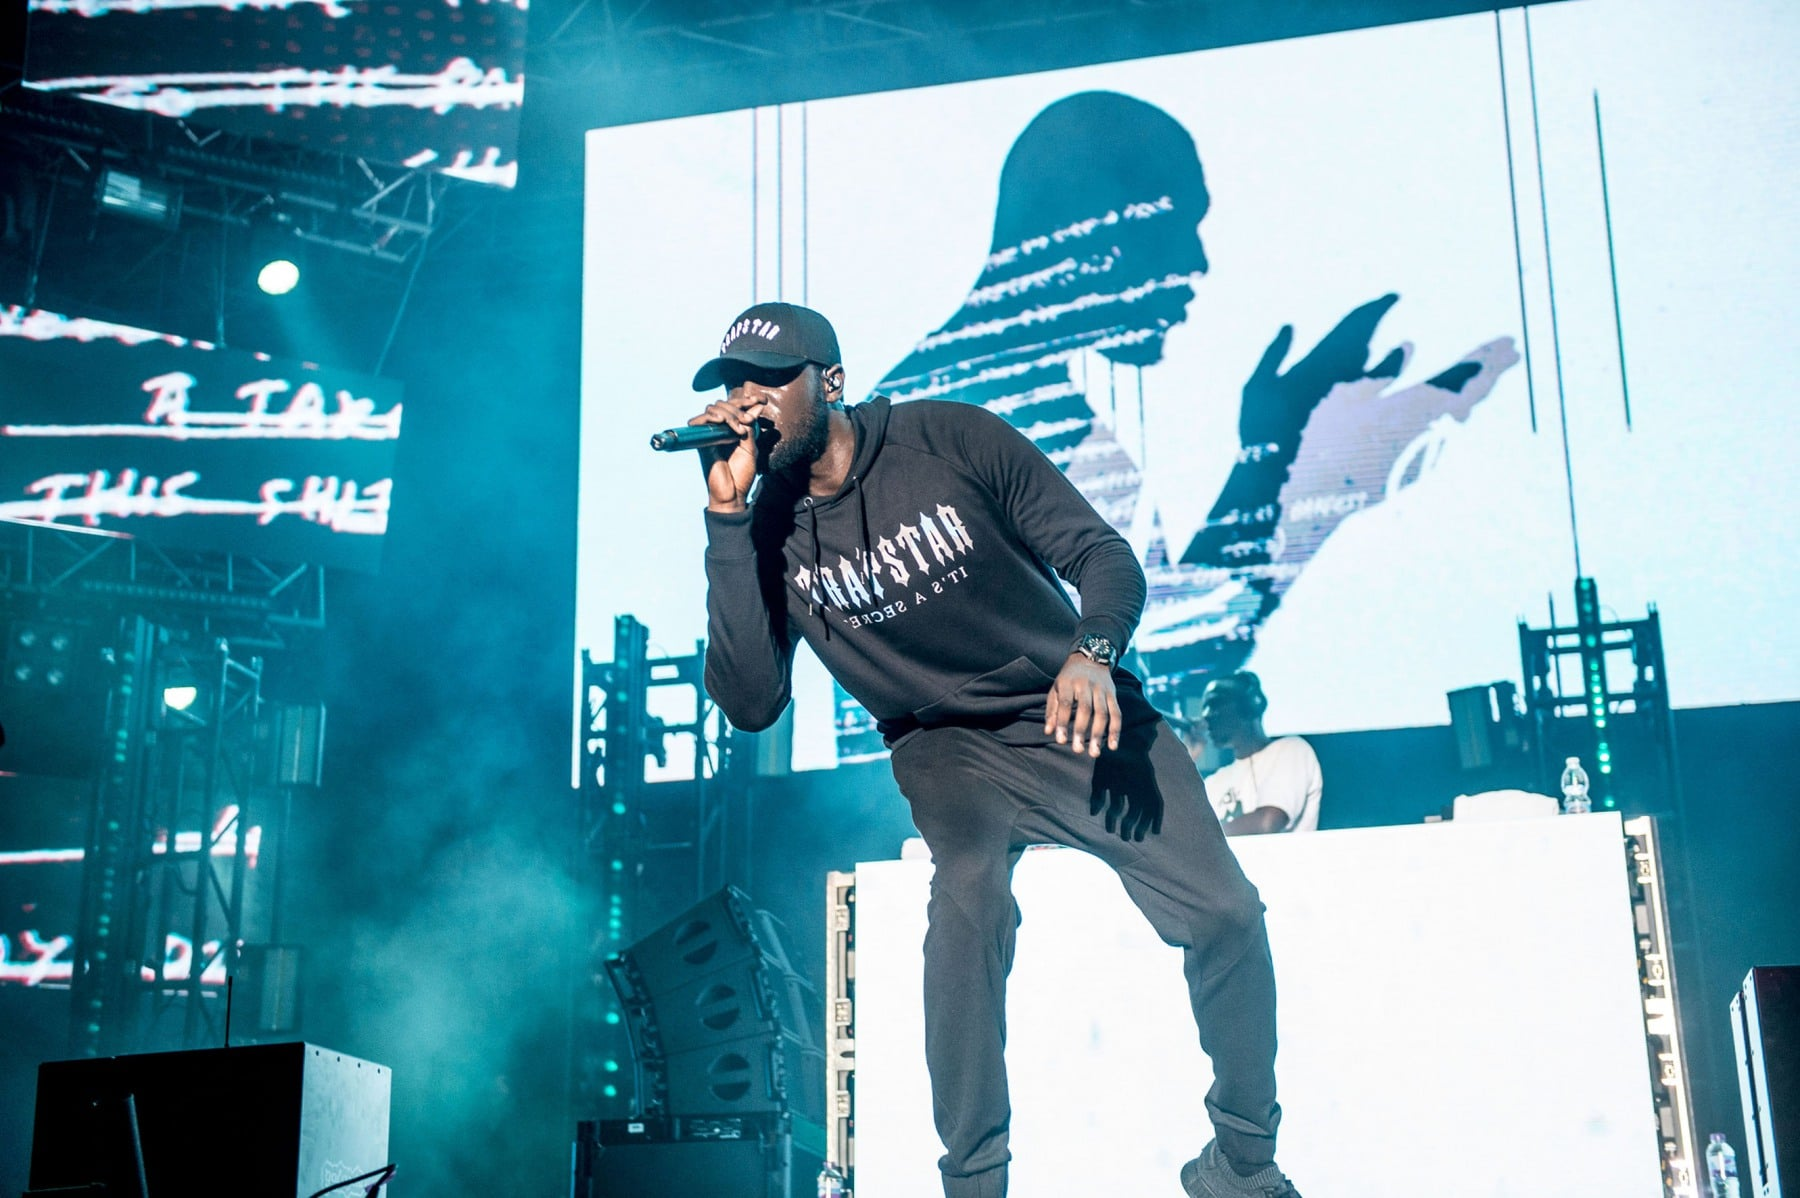 stormzy-at-mtv-presents-gibraltar-calling-2018-day-2-by-ollie-millington-14_43072435540_o